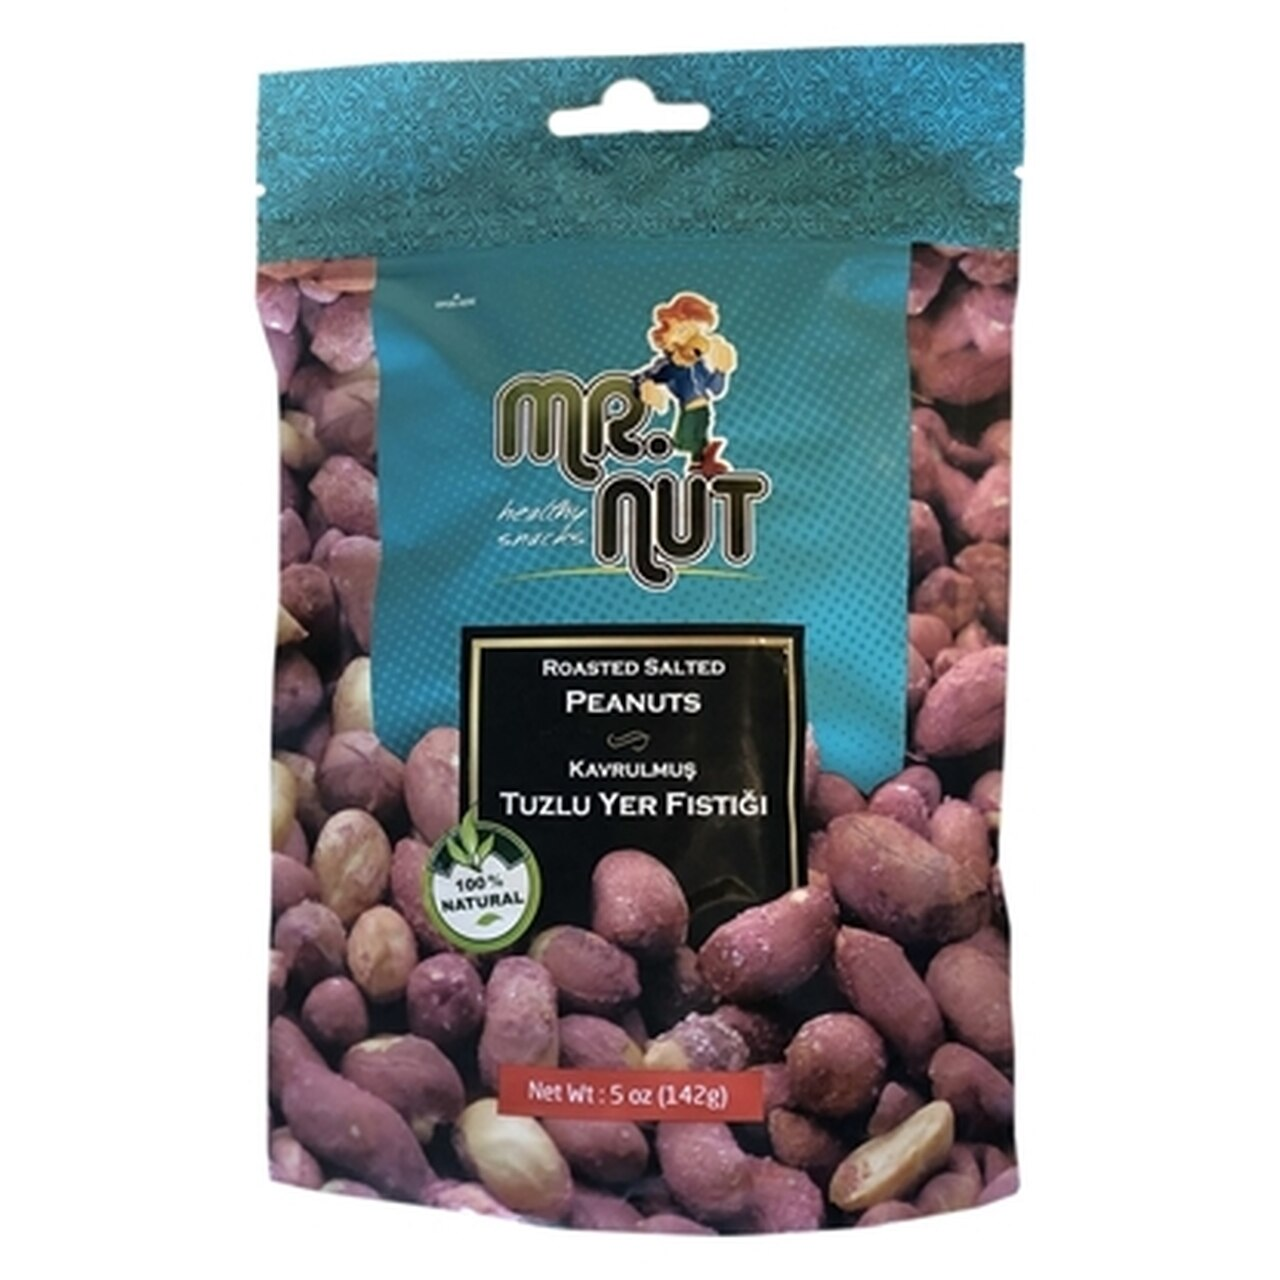 Mr.Nut Roasted and Salted Peanuts (Kavrulmus Tuzlu Fistik) 5Oz